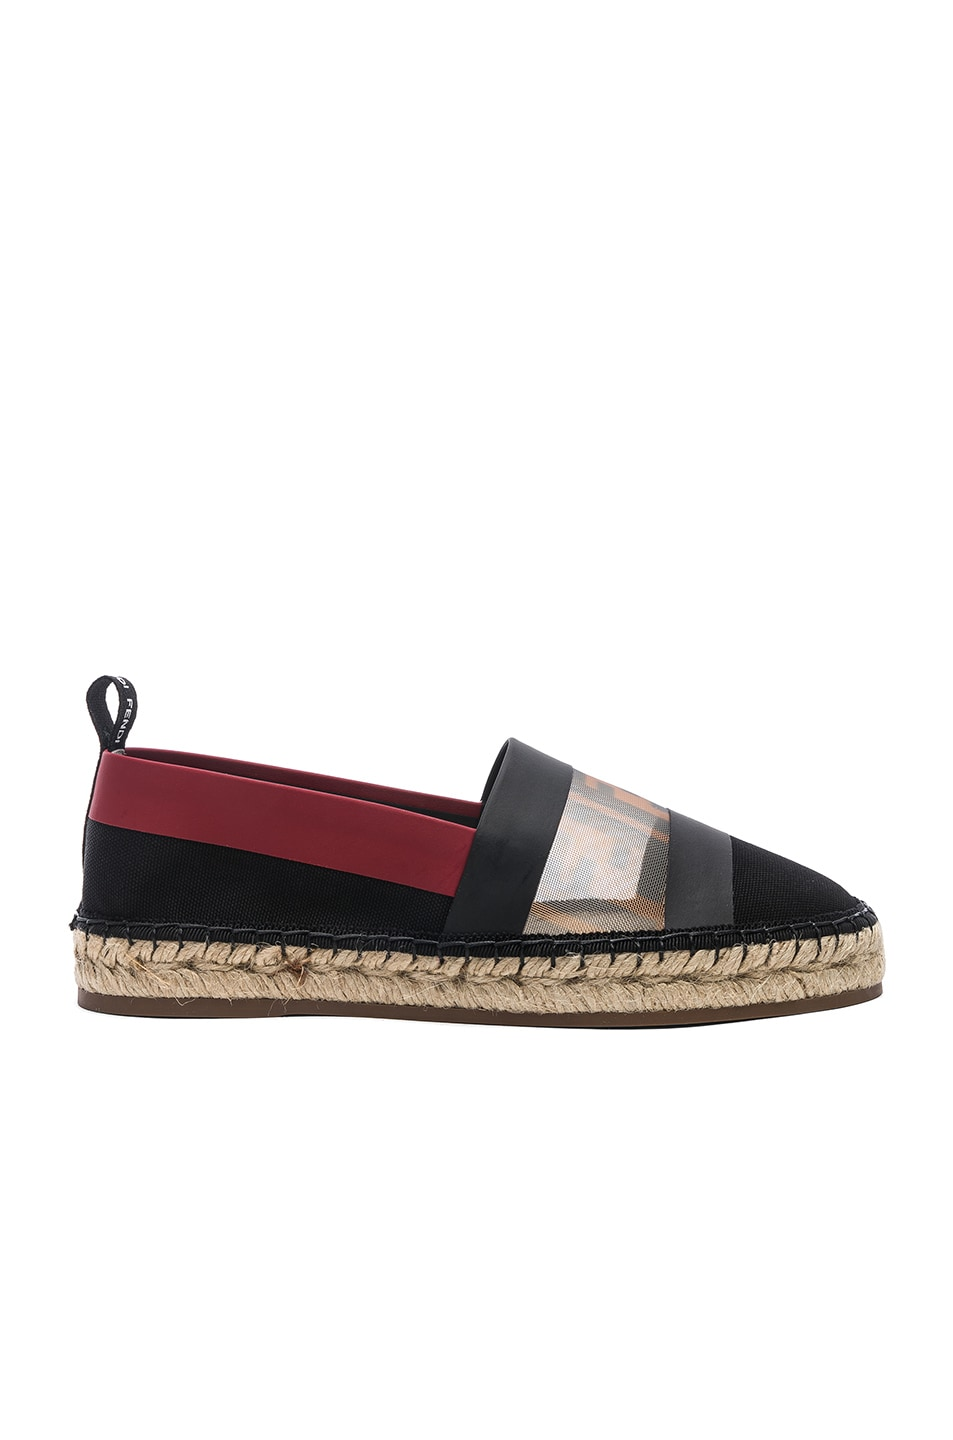 a88bc56d2c401 Image 1 of Fendi Mesh Espadrille Flats in Navy